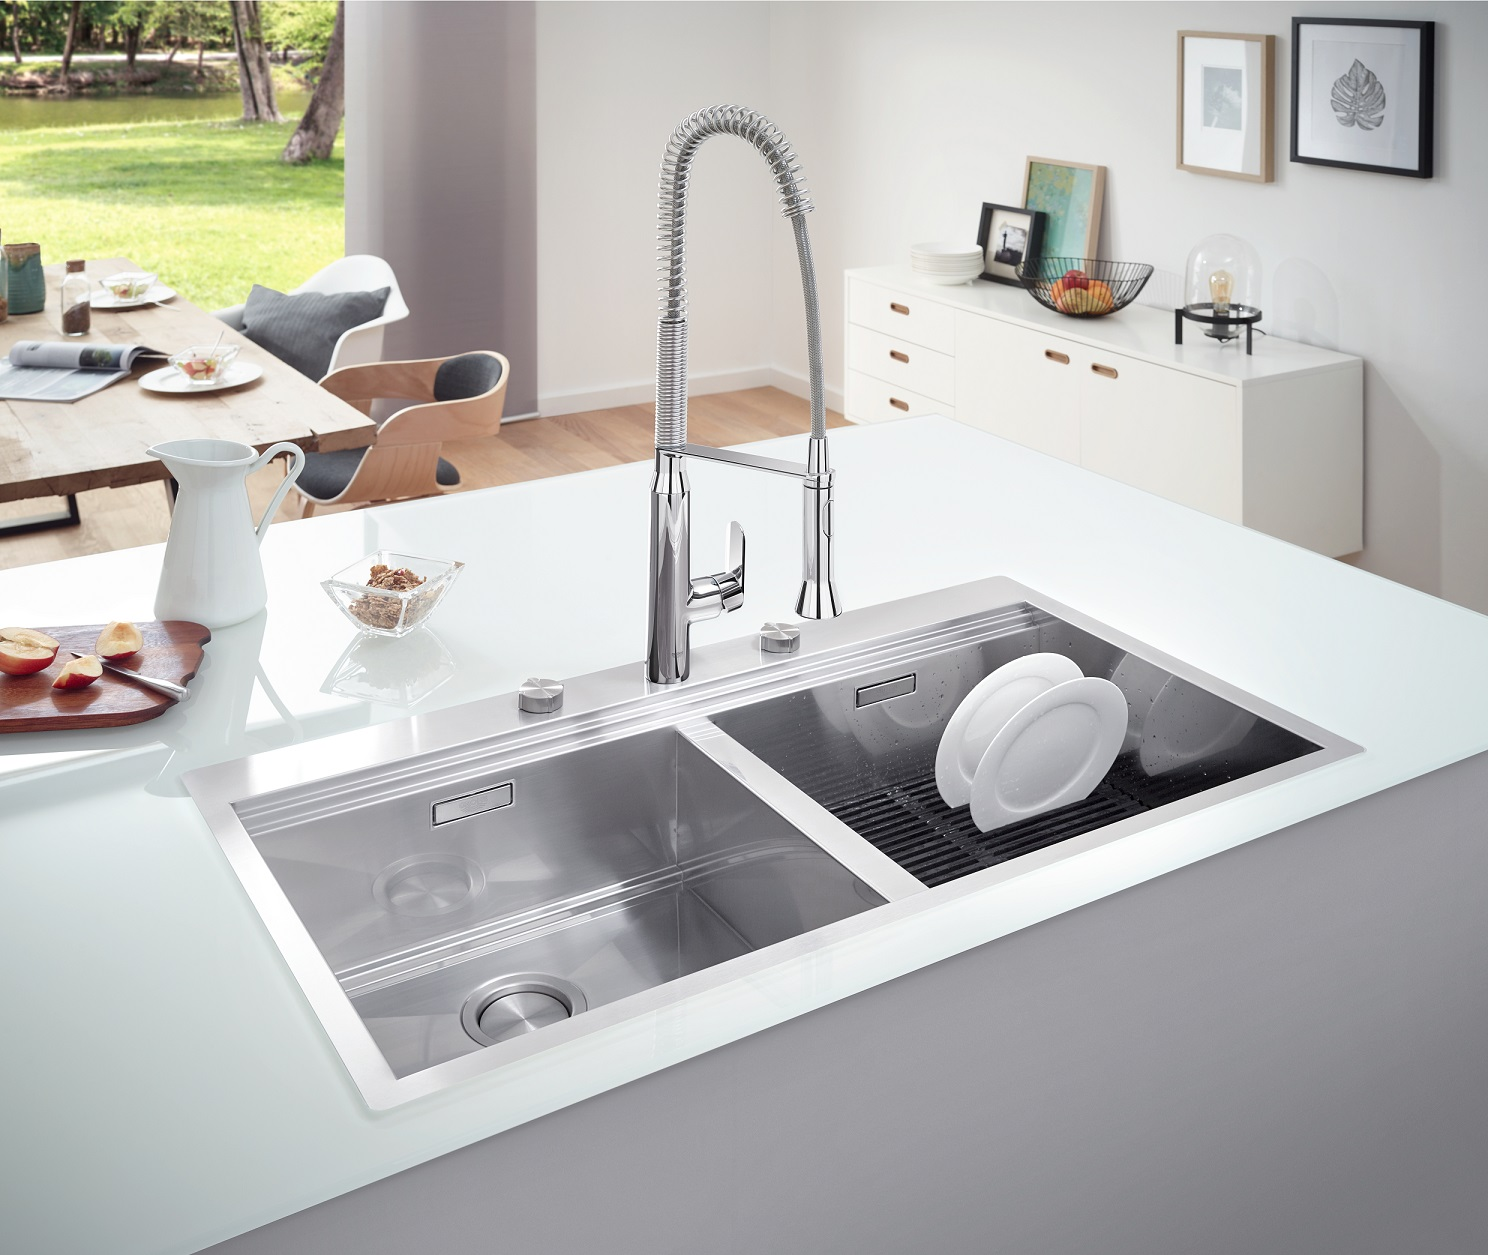 Exceptionnel With Its Unique And High Quality Kitchen Sinks Range, GROHE, The Worldu0027s  Leading Provider Of Sanitary Fittings, Now Sets New Standards, Making Every  Use Of ...